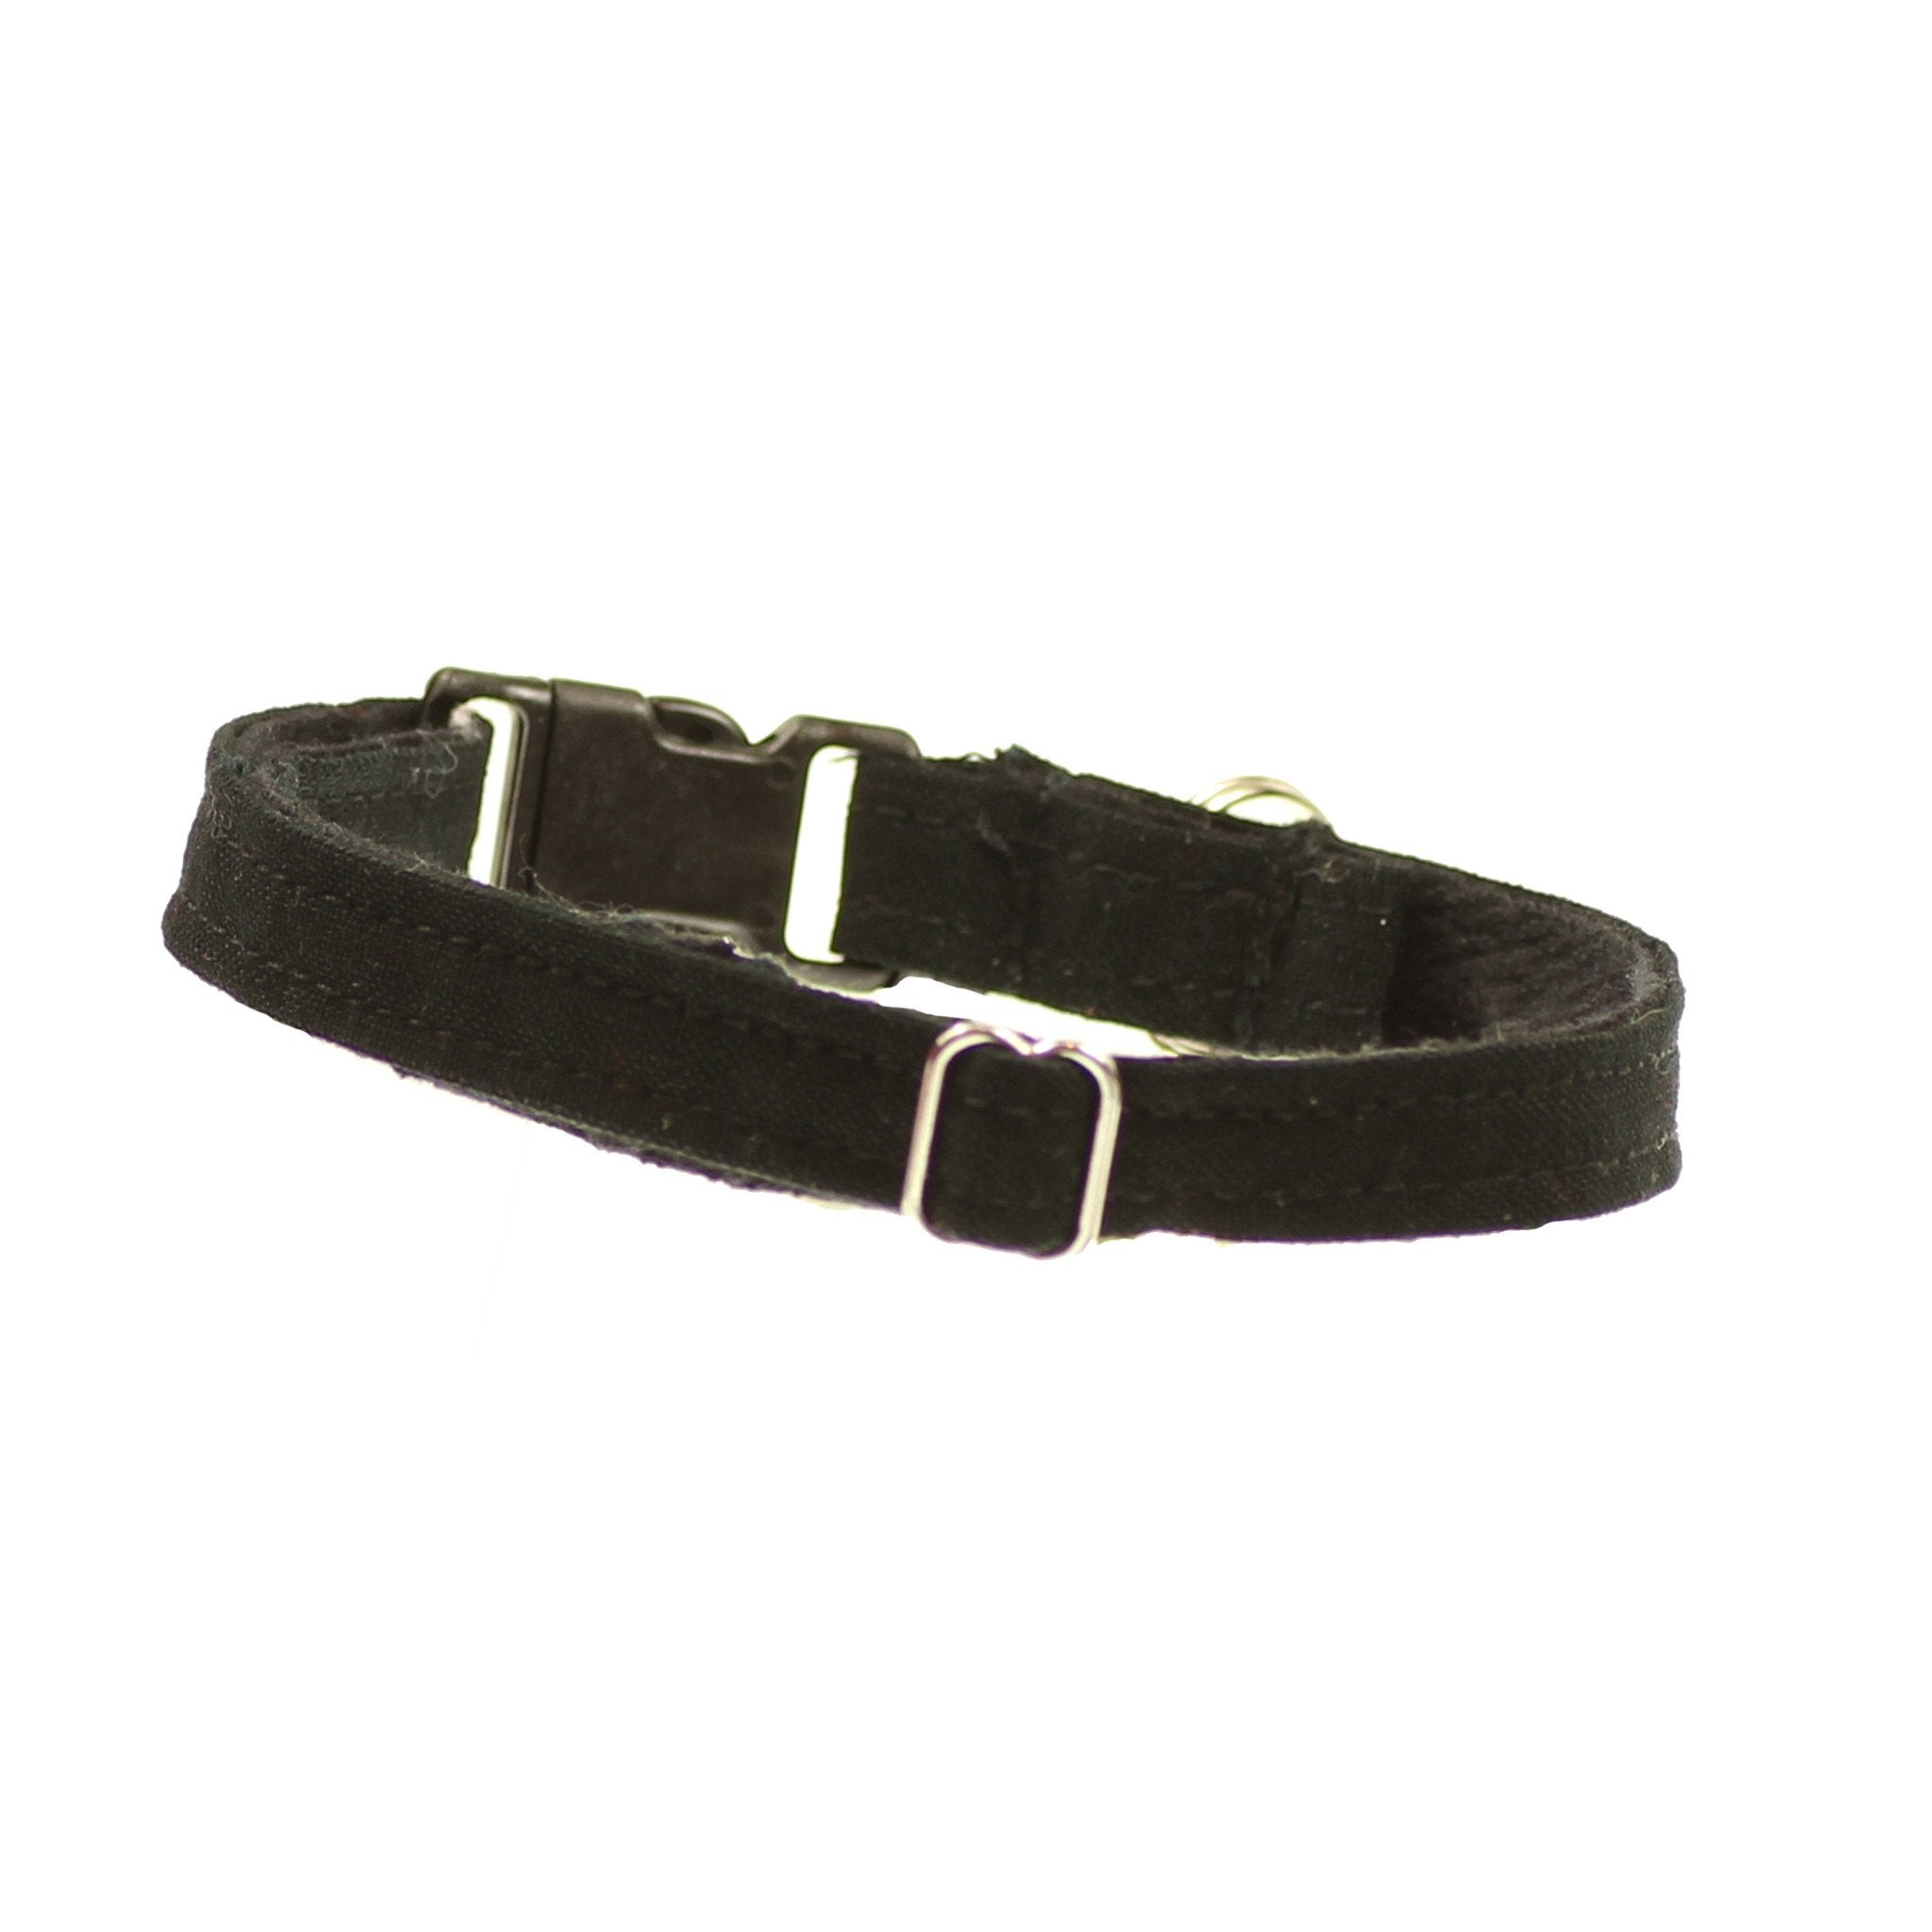 Dharf adjustable black cat collar with bell and breakaway safety clasp